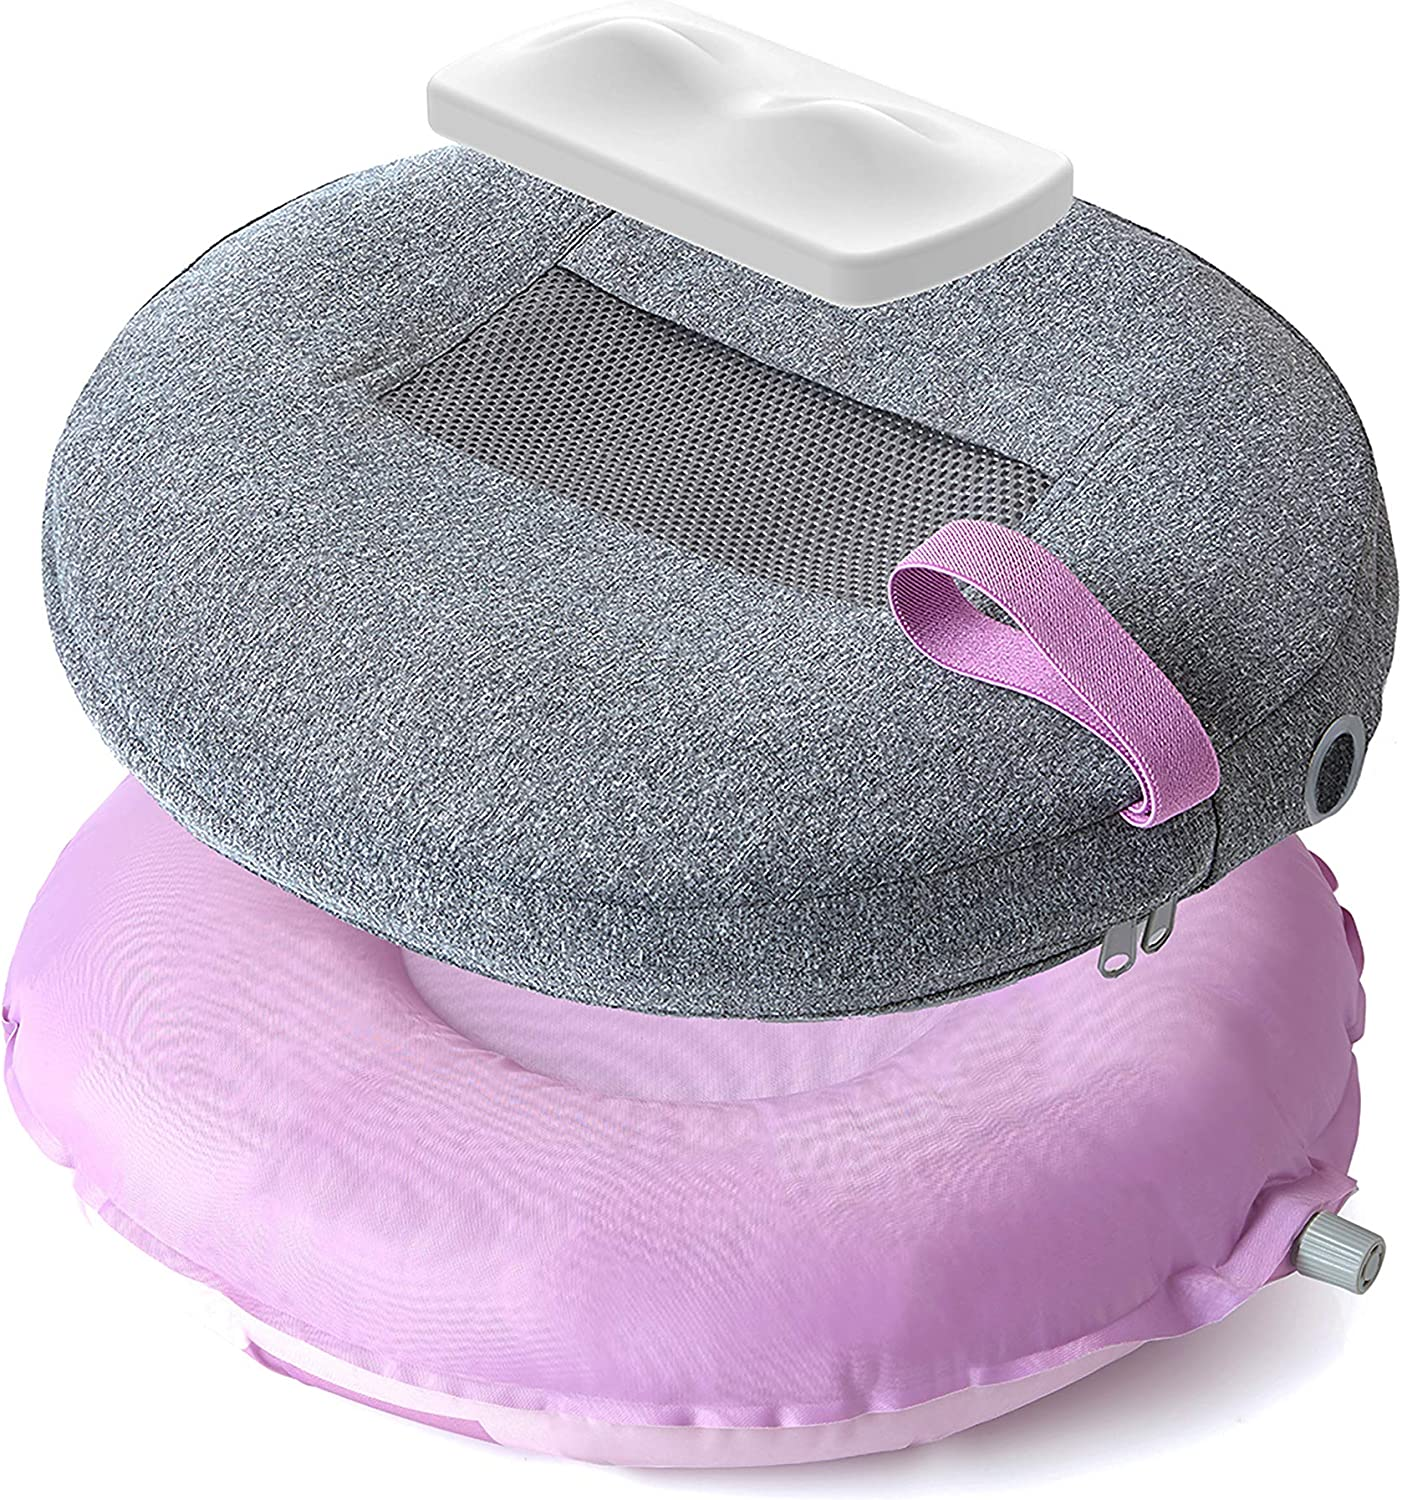 FridaBaby Mom Perineal Comfort Donut Cushion: Health & Personal Care